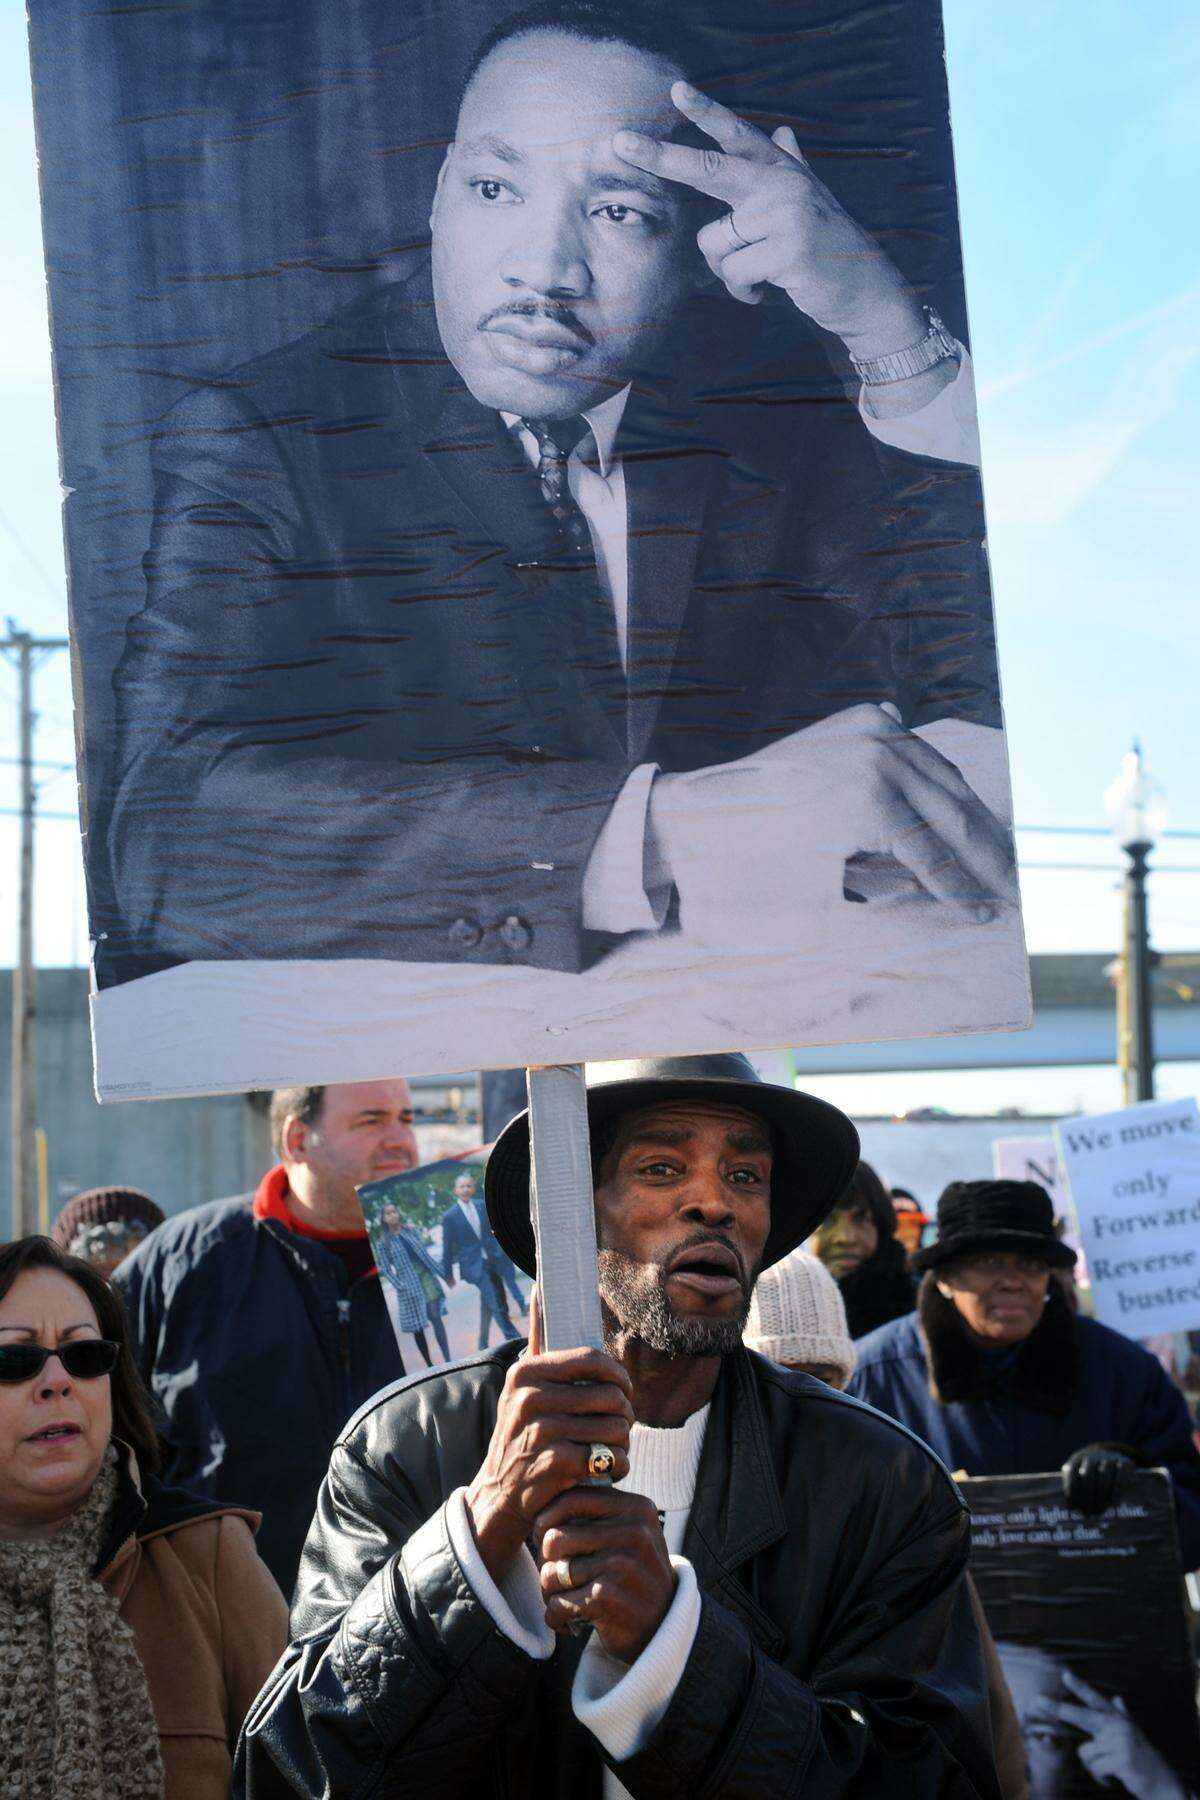 Ernest Newton takes part in the annual march marking Martin Luther King Jr. Day in Bridgeport, Conn. Jan. 16, 2017.